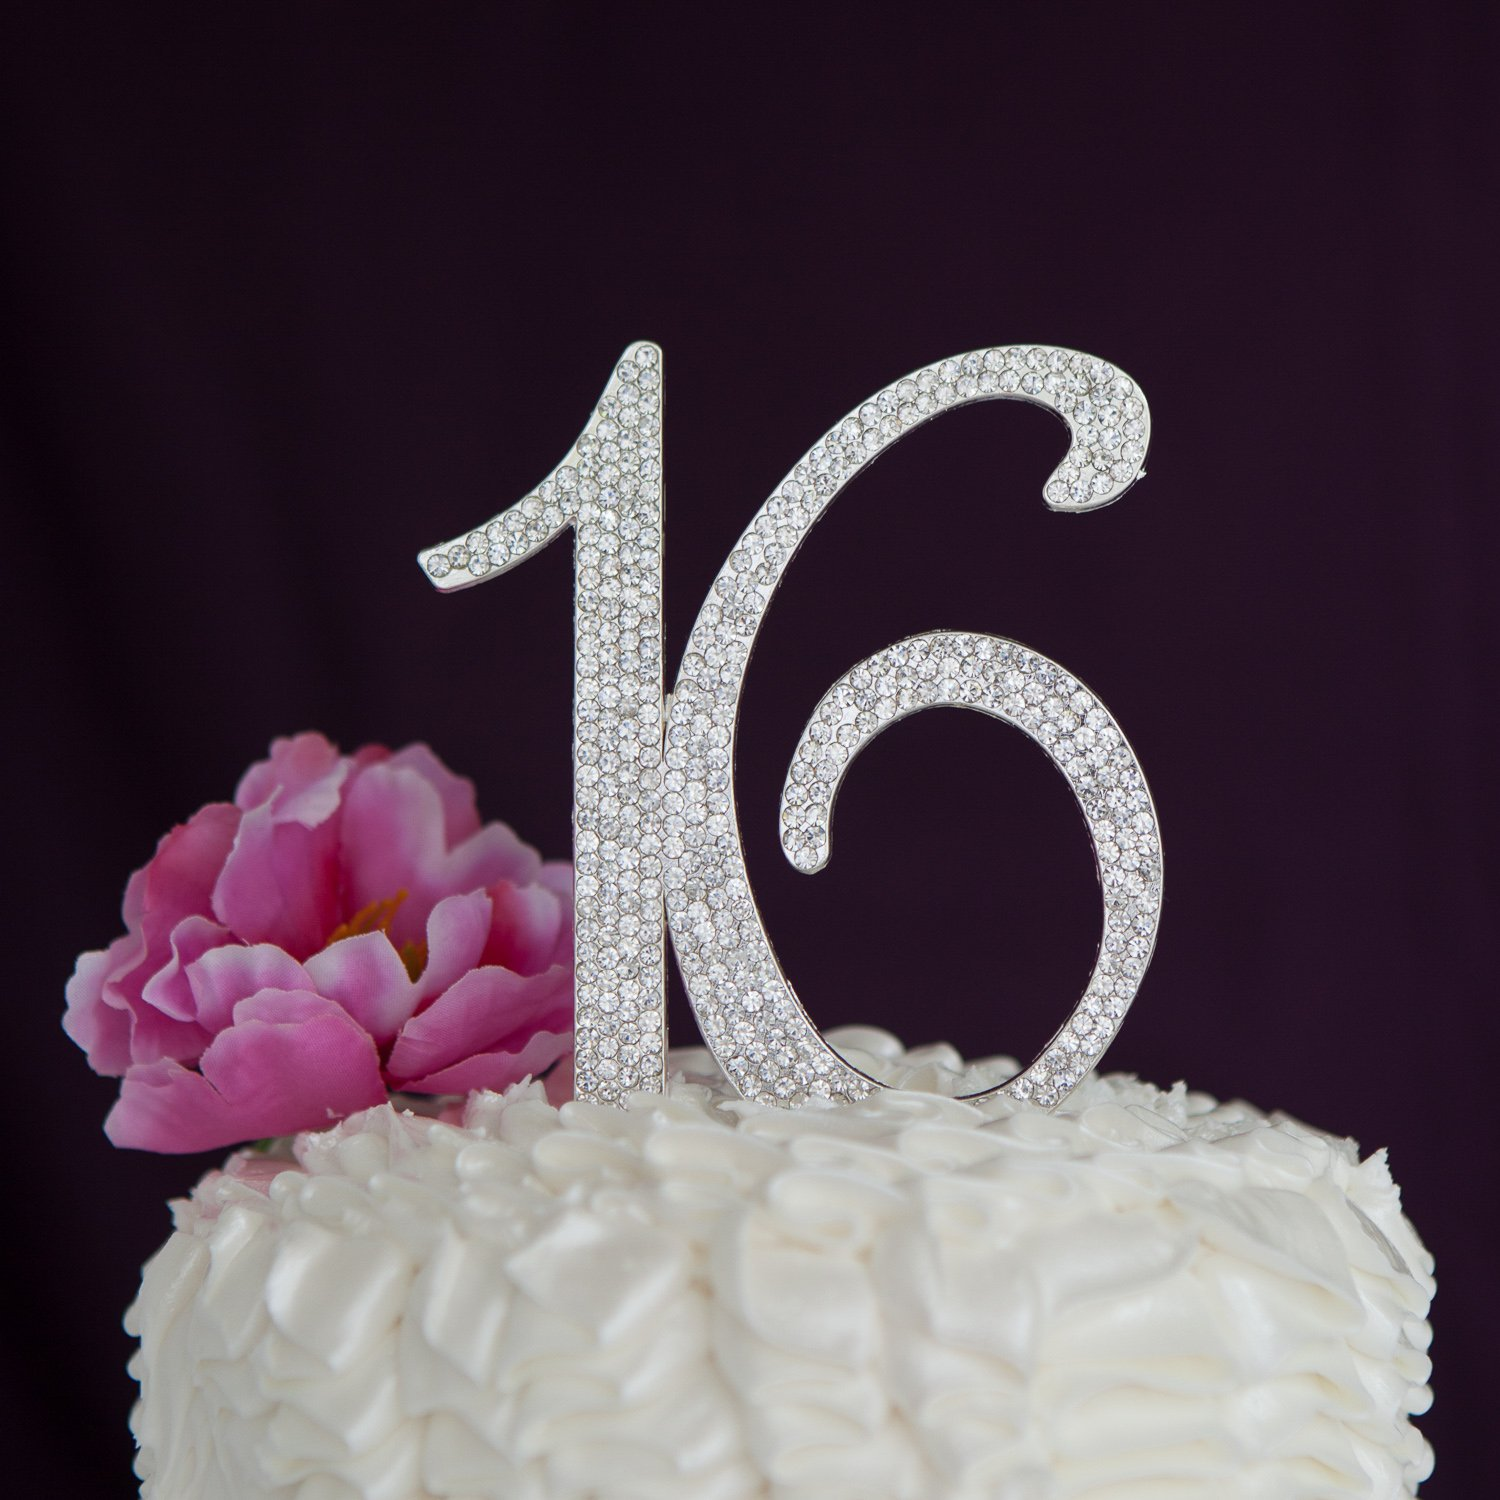 Amazon.com Ella Celebration 16 Cake Topper 16th Birthday Party Supplies Decoration Ideas Silver Rhinestone Number (Silver) Kitchen u0026 Dining & Amazon.com: Ella Celebration 16 Cake Topper 16th Birthday Party ...